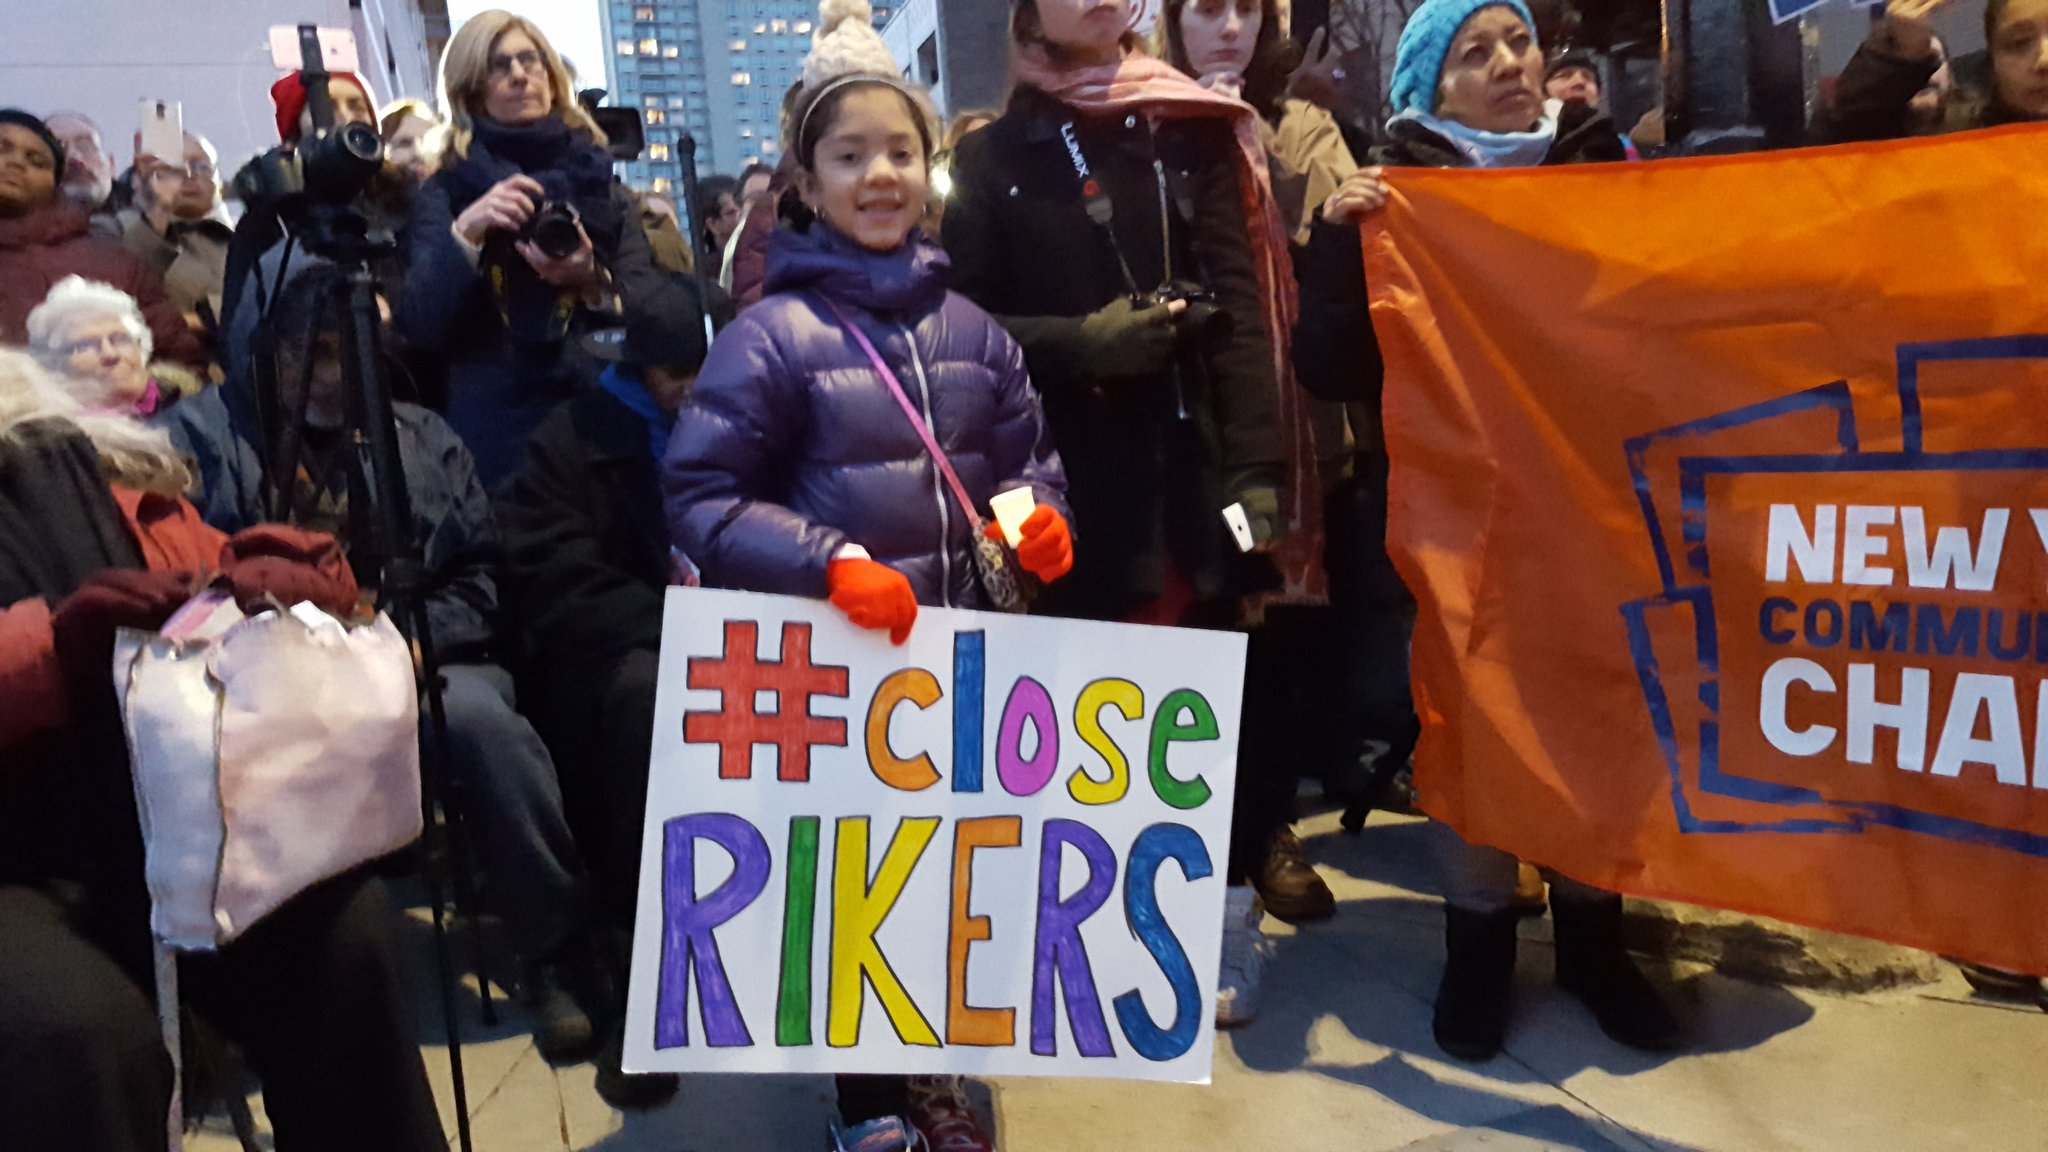 #CloseRikers for our future. @glennEmartin @closerikers @angiemartinez https://t.co/pxqQyr8D1a